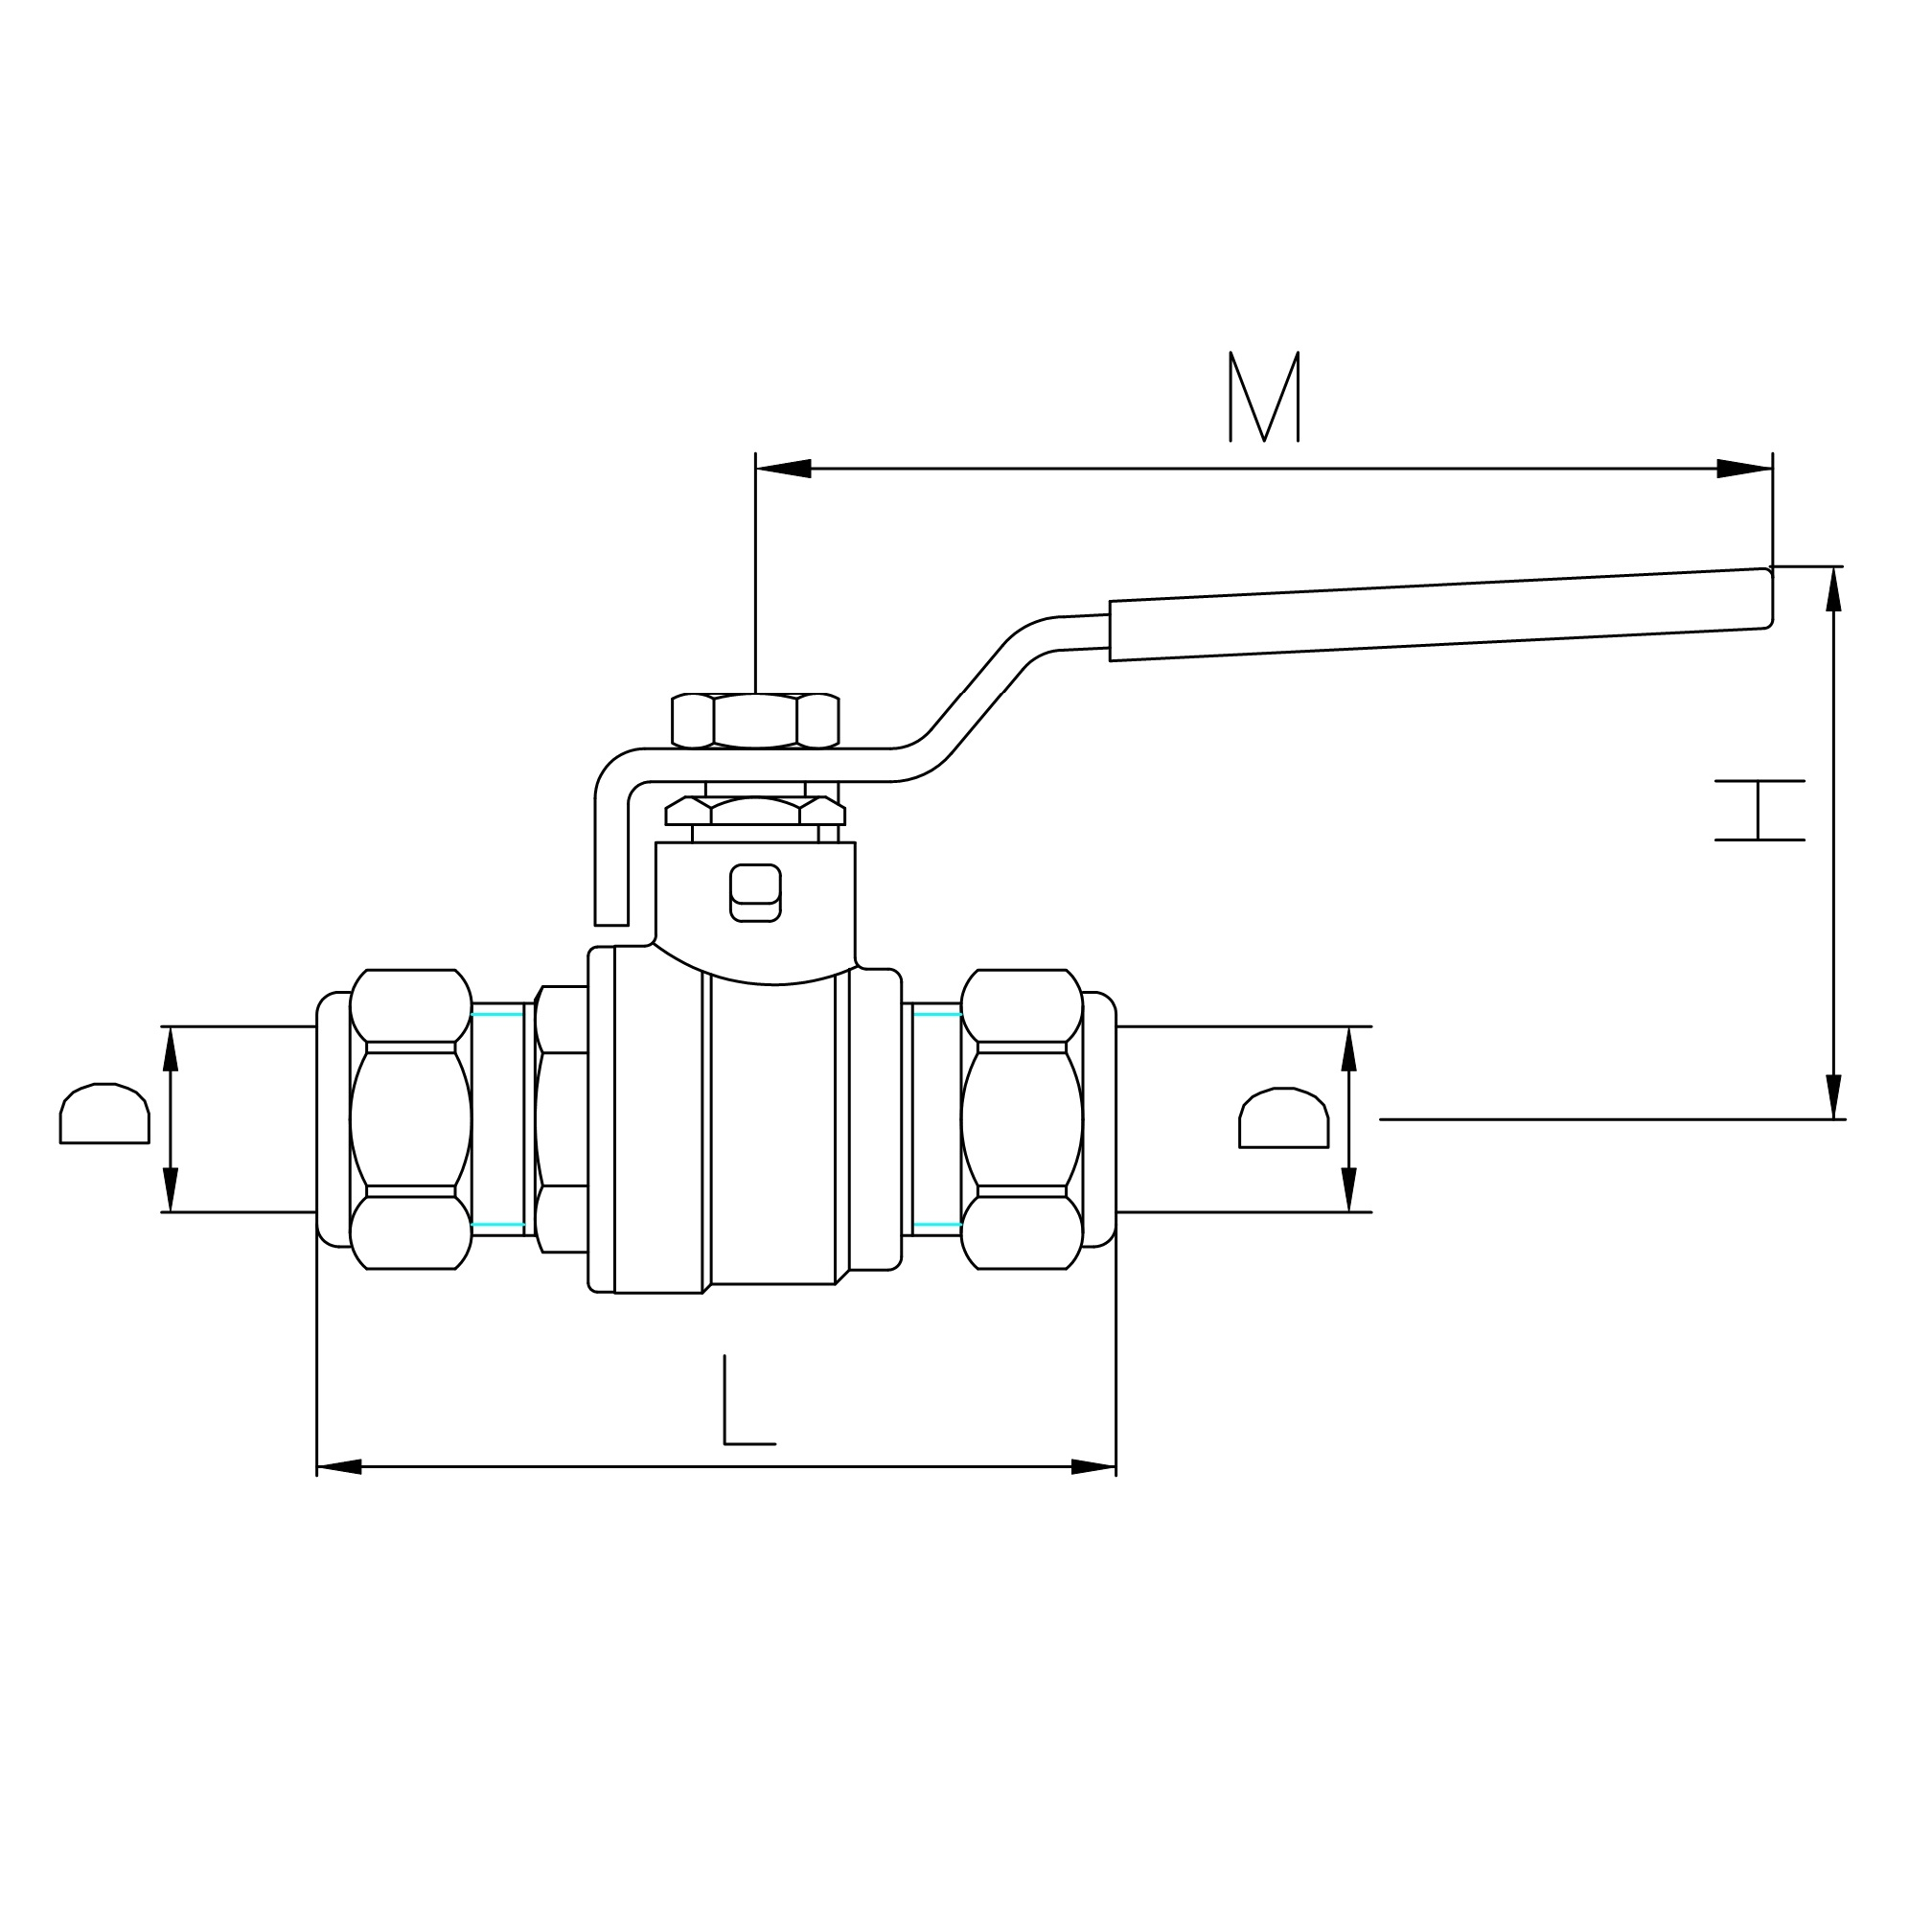 Datasheet - DZR brass ball valve copper to copper compression, iron lever handle